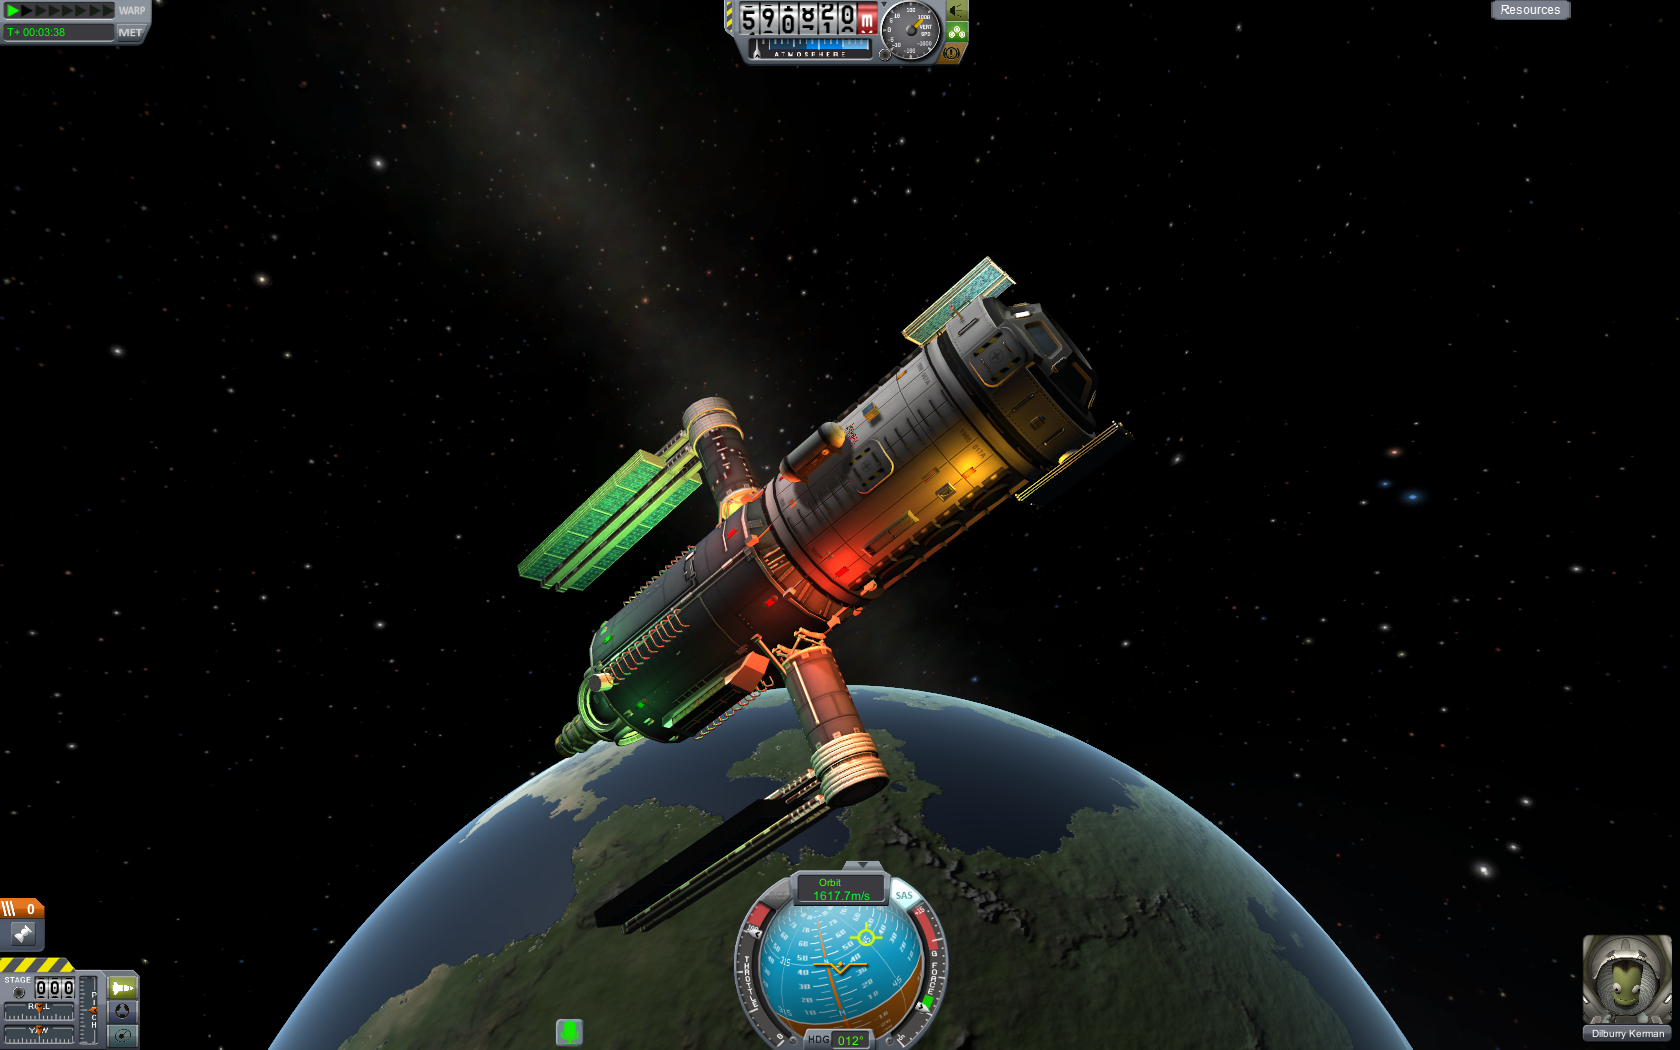 Kerbal Space Program Aircraft Carrier Mod (page 2) - Pics ...